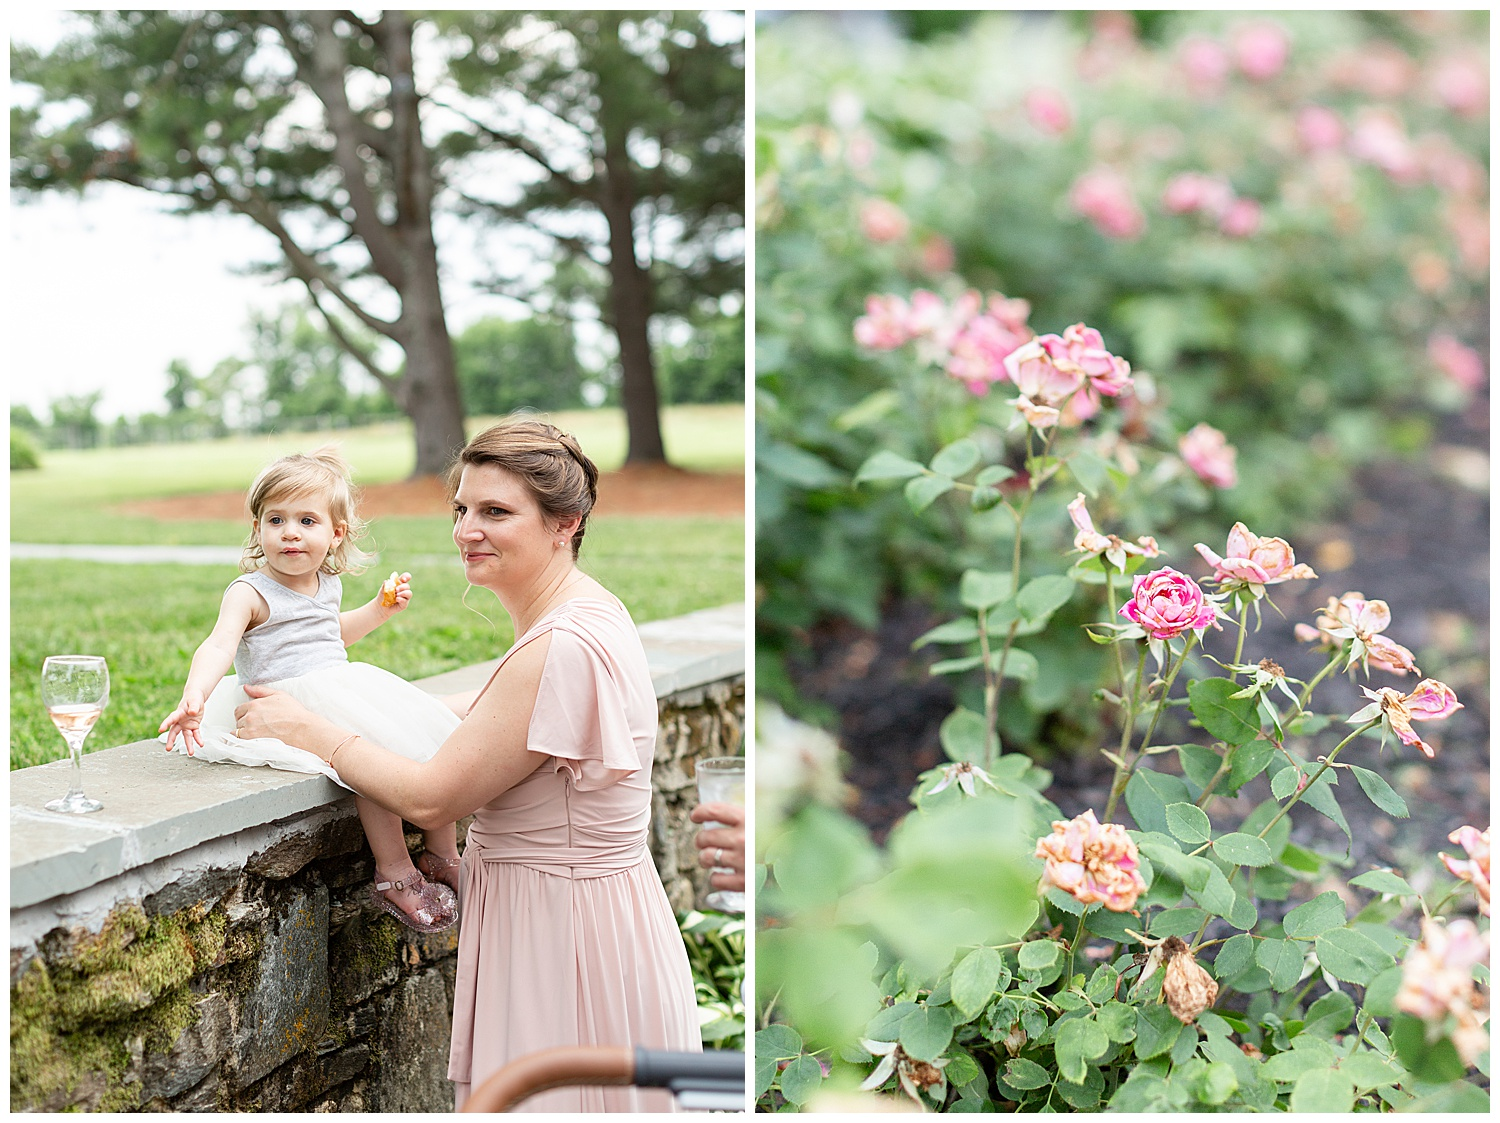 stone-manor-country-club-wedding-emily-belson-photography-86.jpg